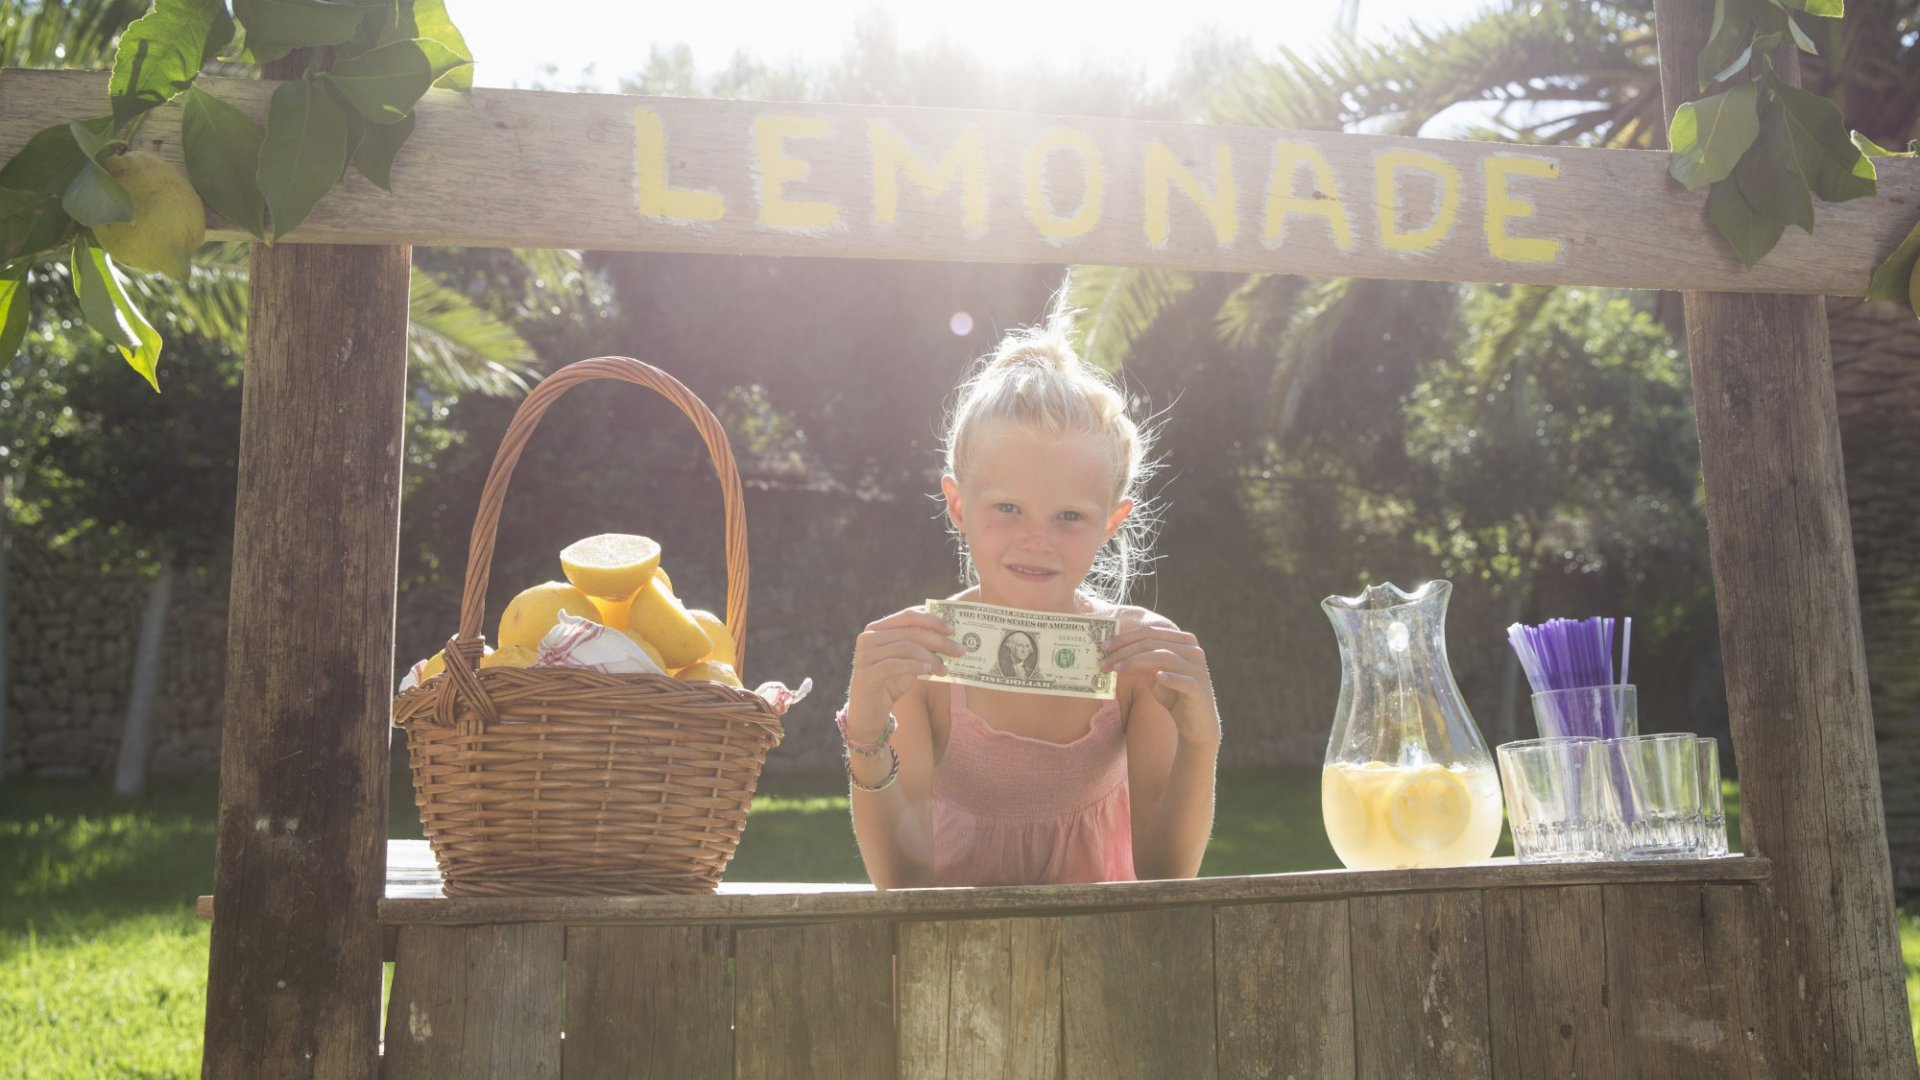 6 Highly Creative Childhood Businesses